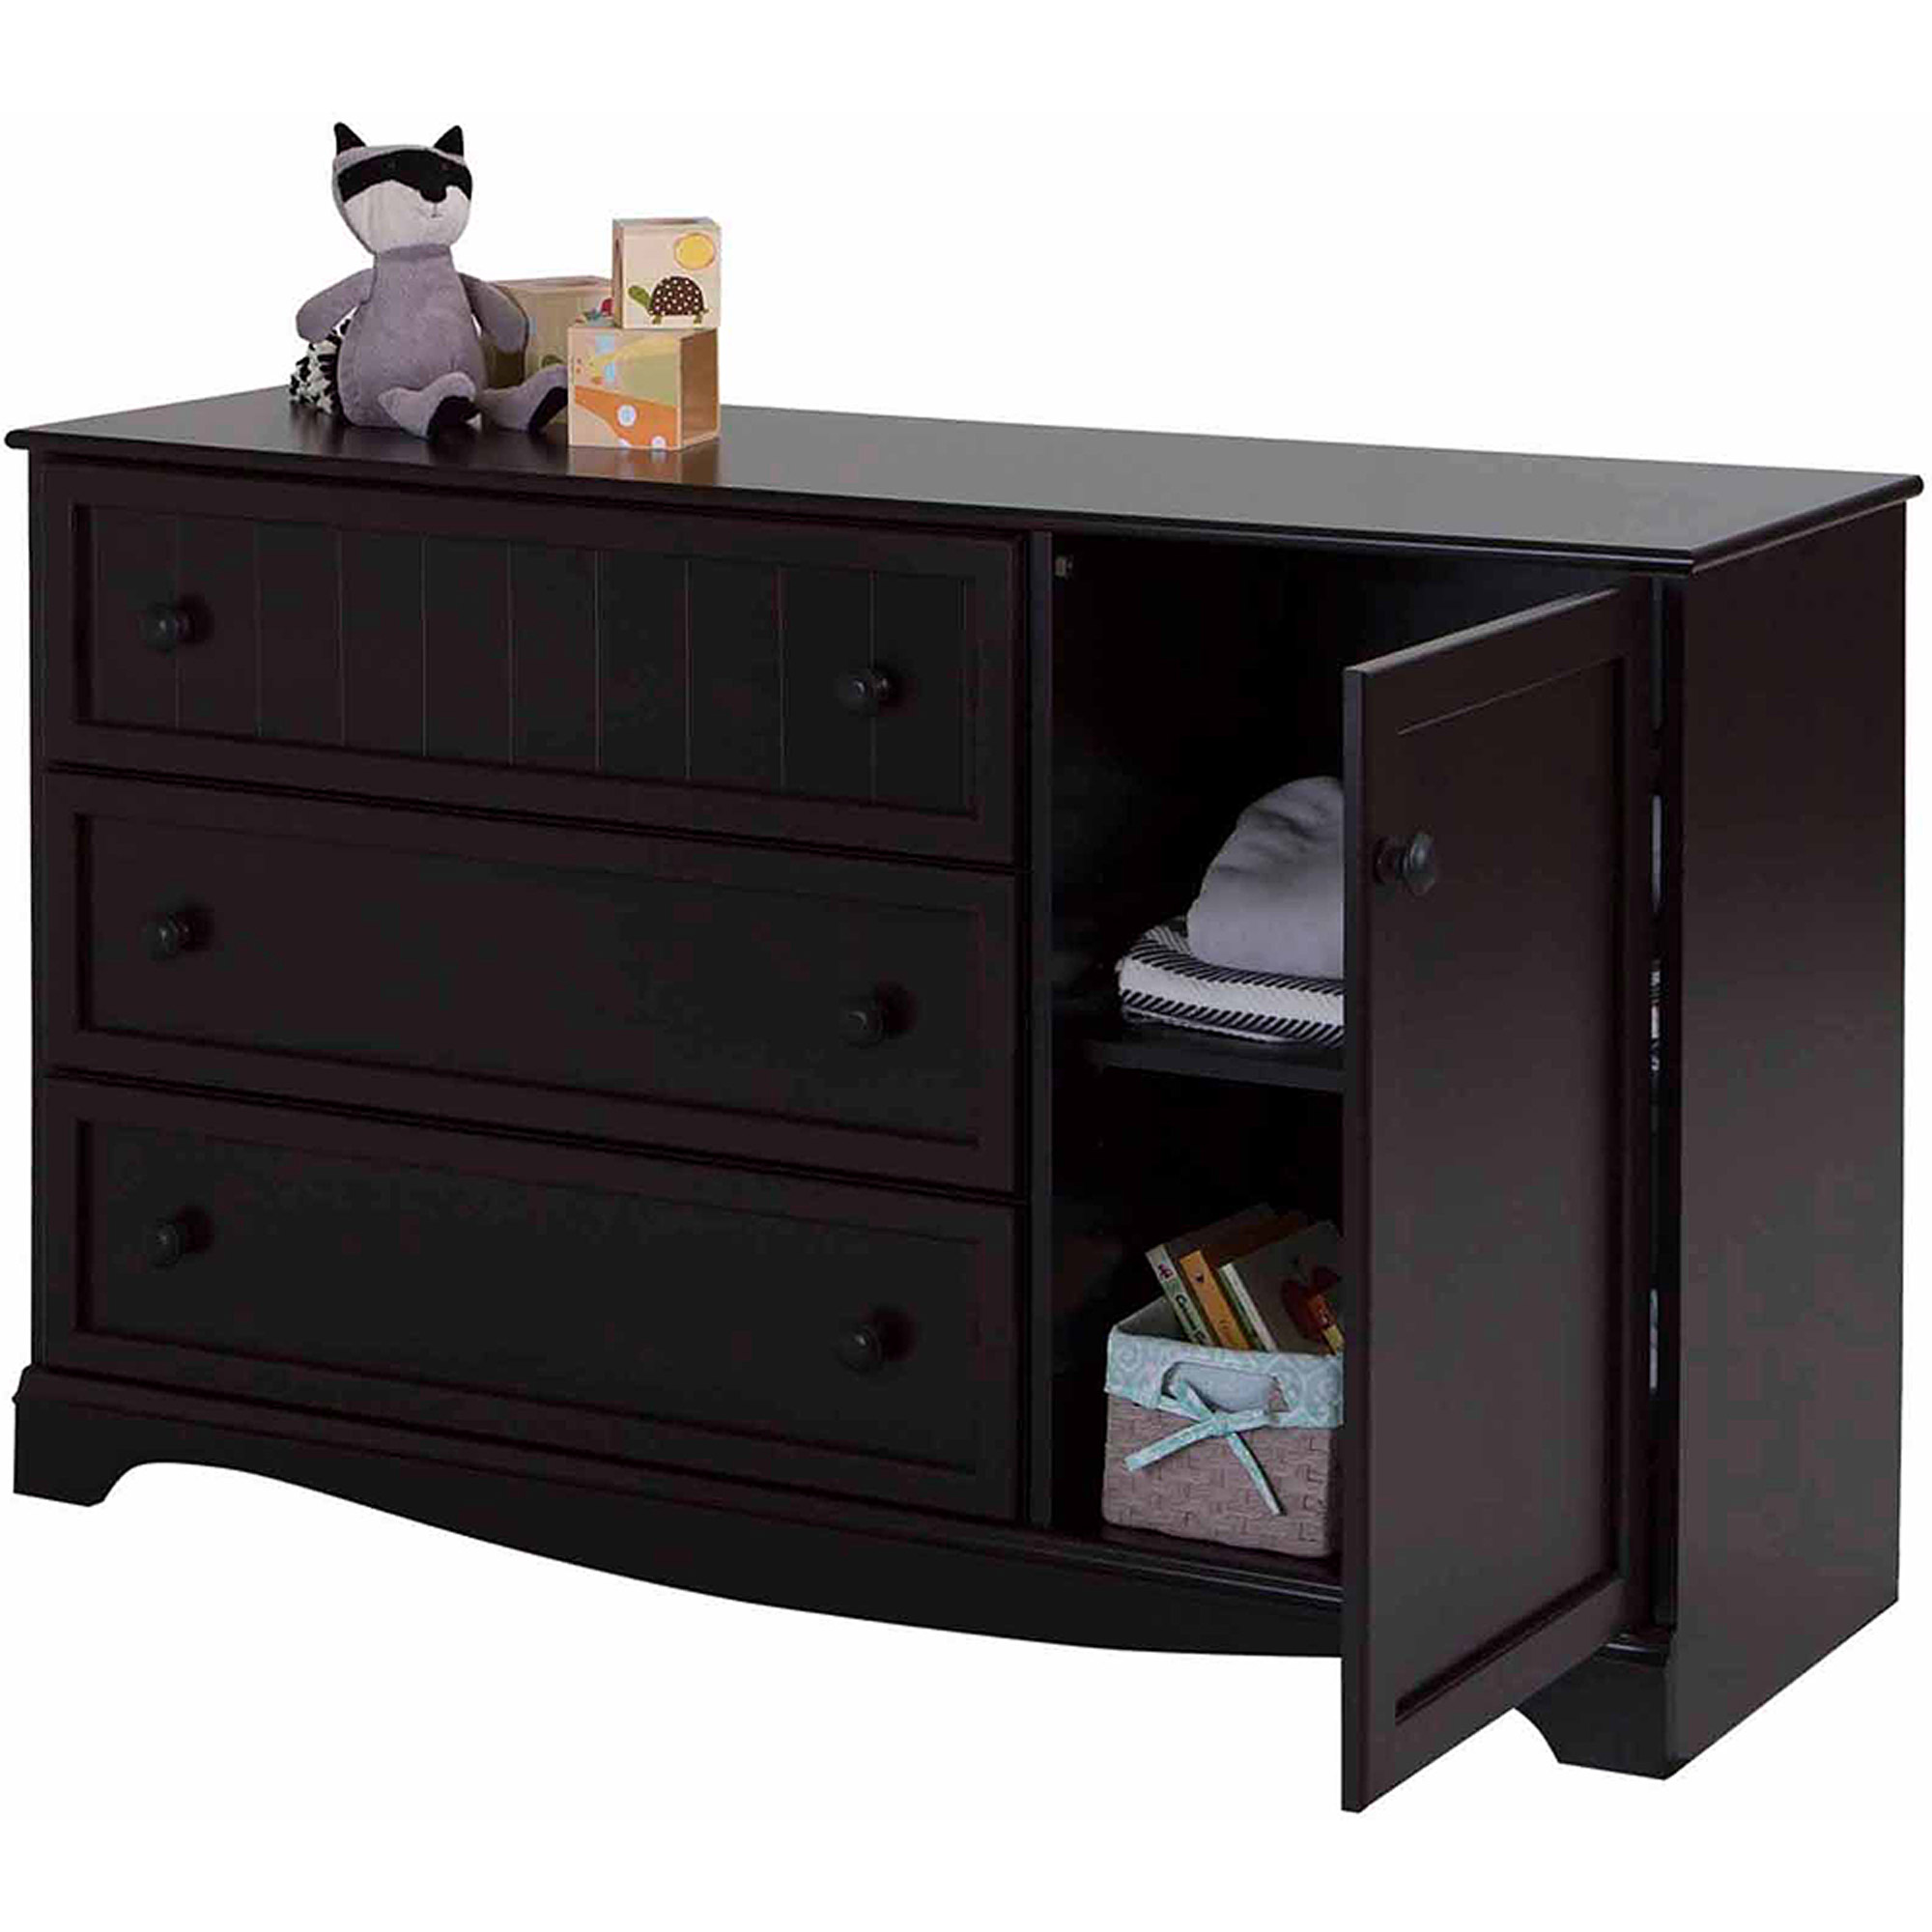 chest of altra quinn furniture p dresser chests the espresso drawers dressers drawer